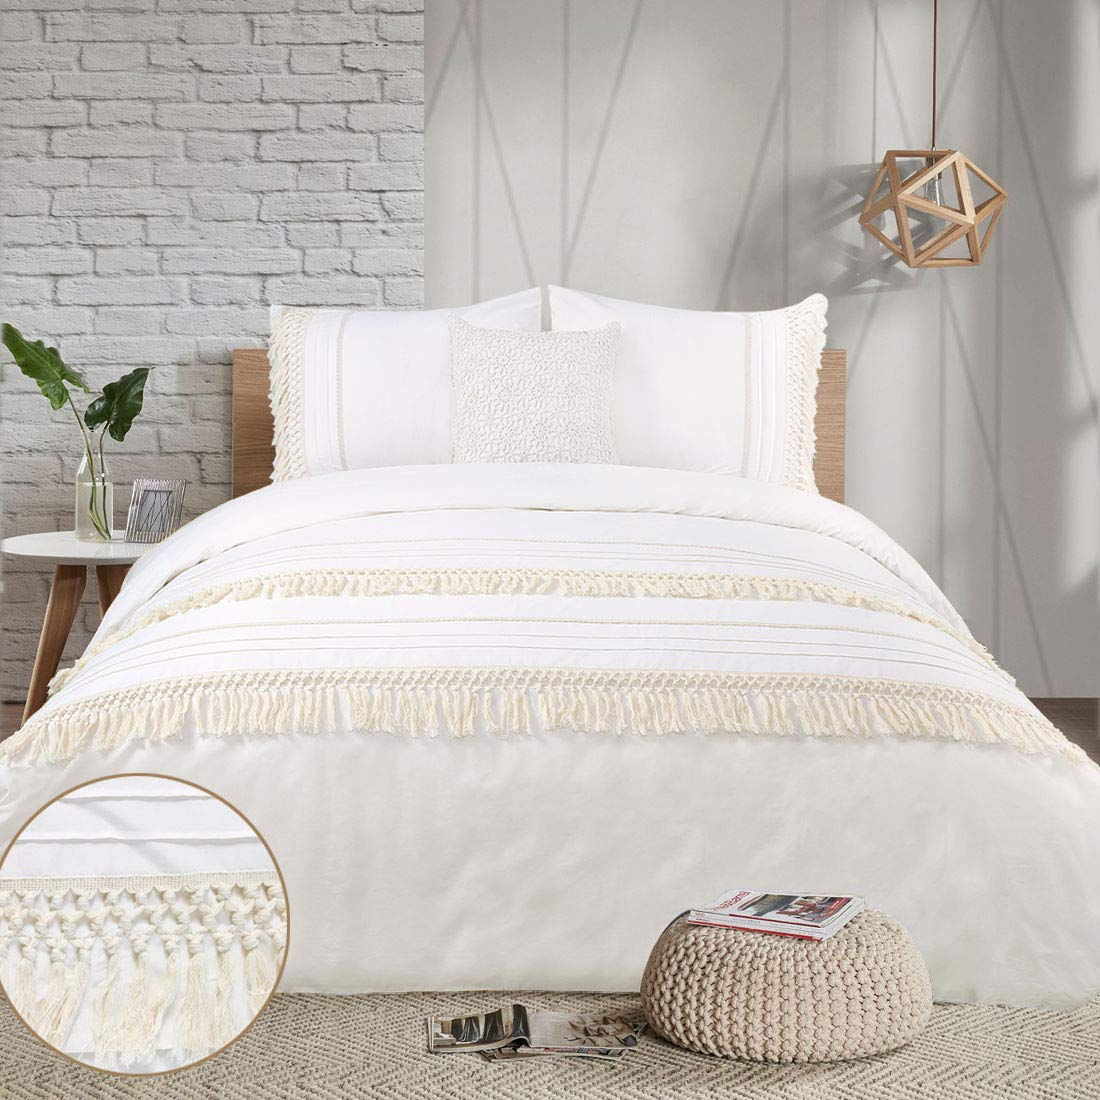 YINFUNG Boho Duvet Cover Queen Ivory Tassel Cream Macrame Crochet Boho Chic Tufted 90 x 90 Quilt Cover Fringe Beige Off White 3PC Bedding Set Lace Trim Cute Pretty Country Romantic Cotton 100%